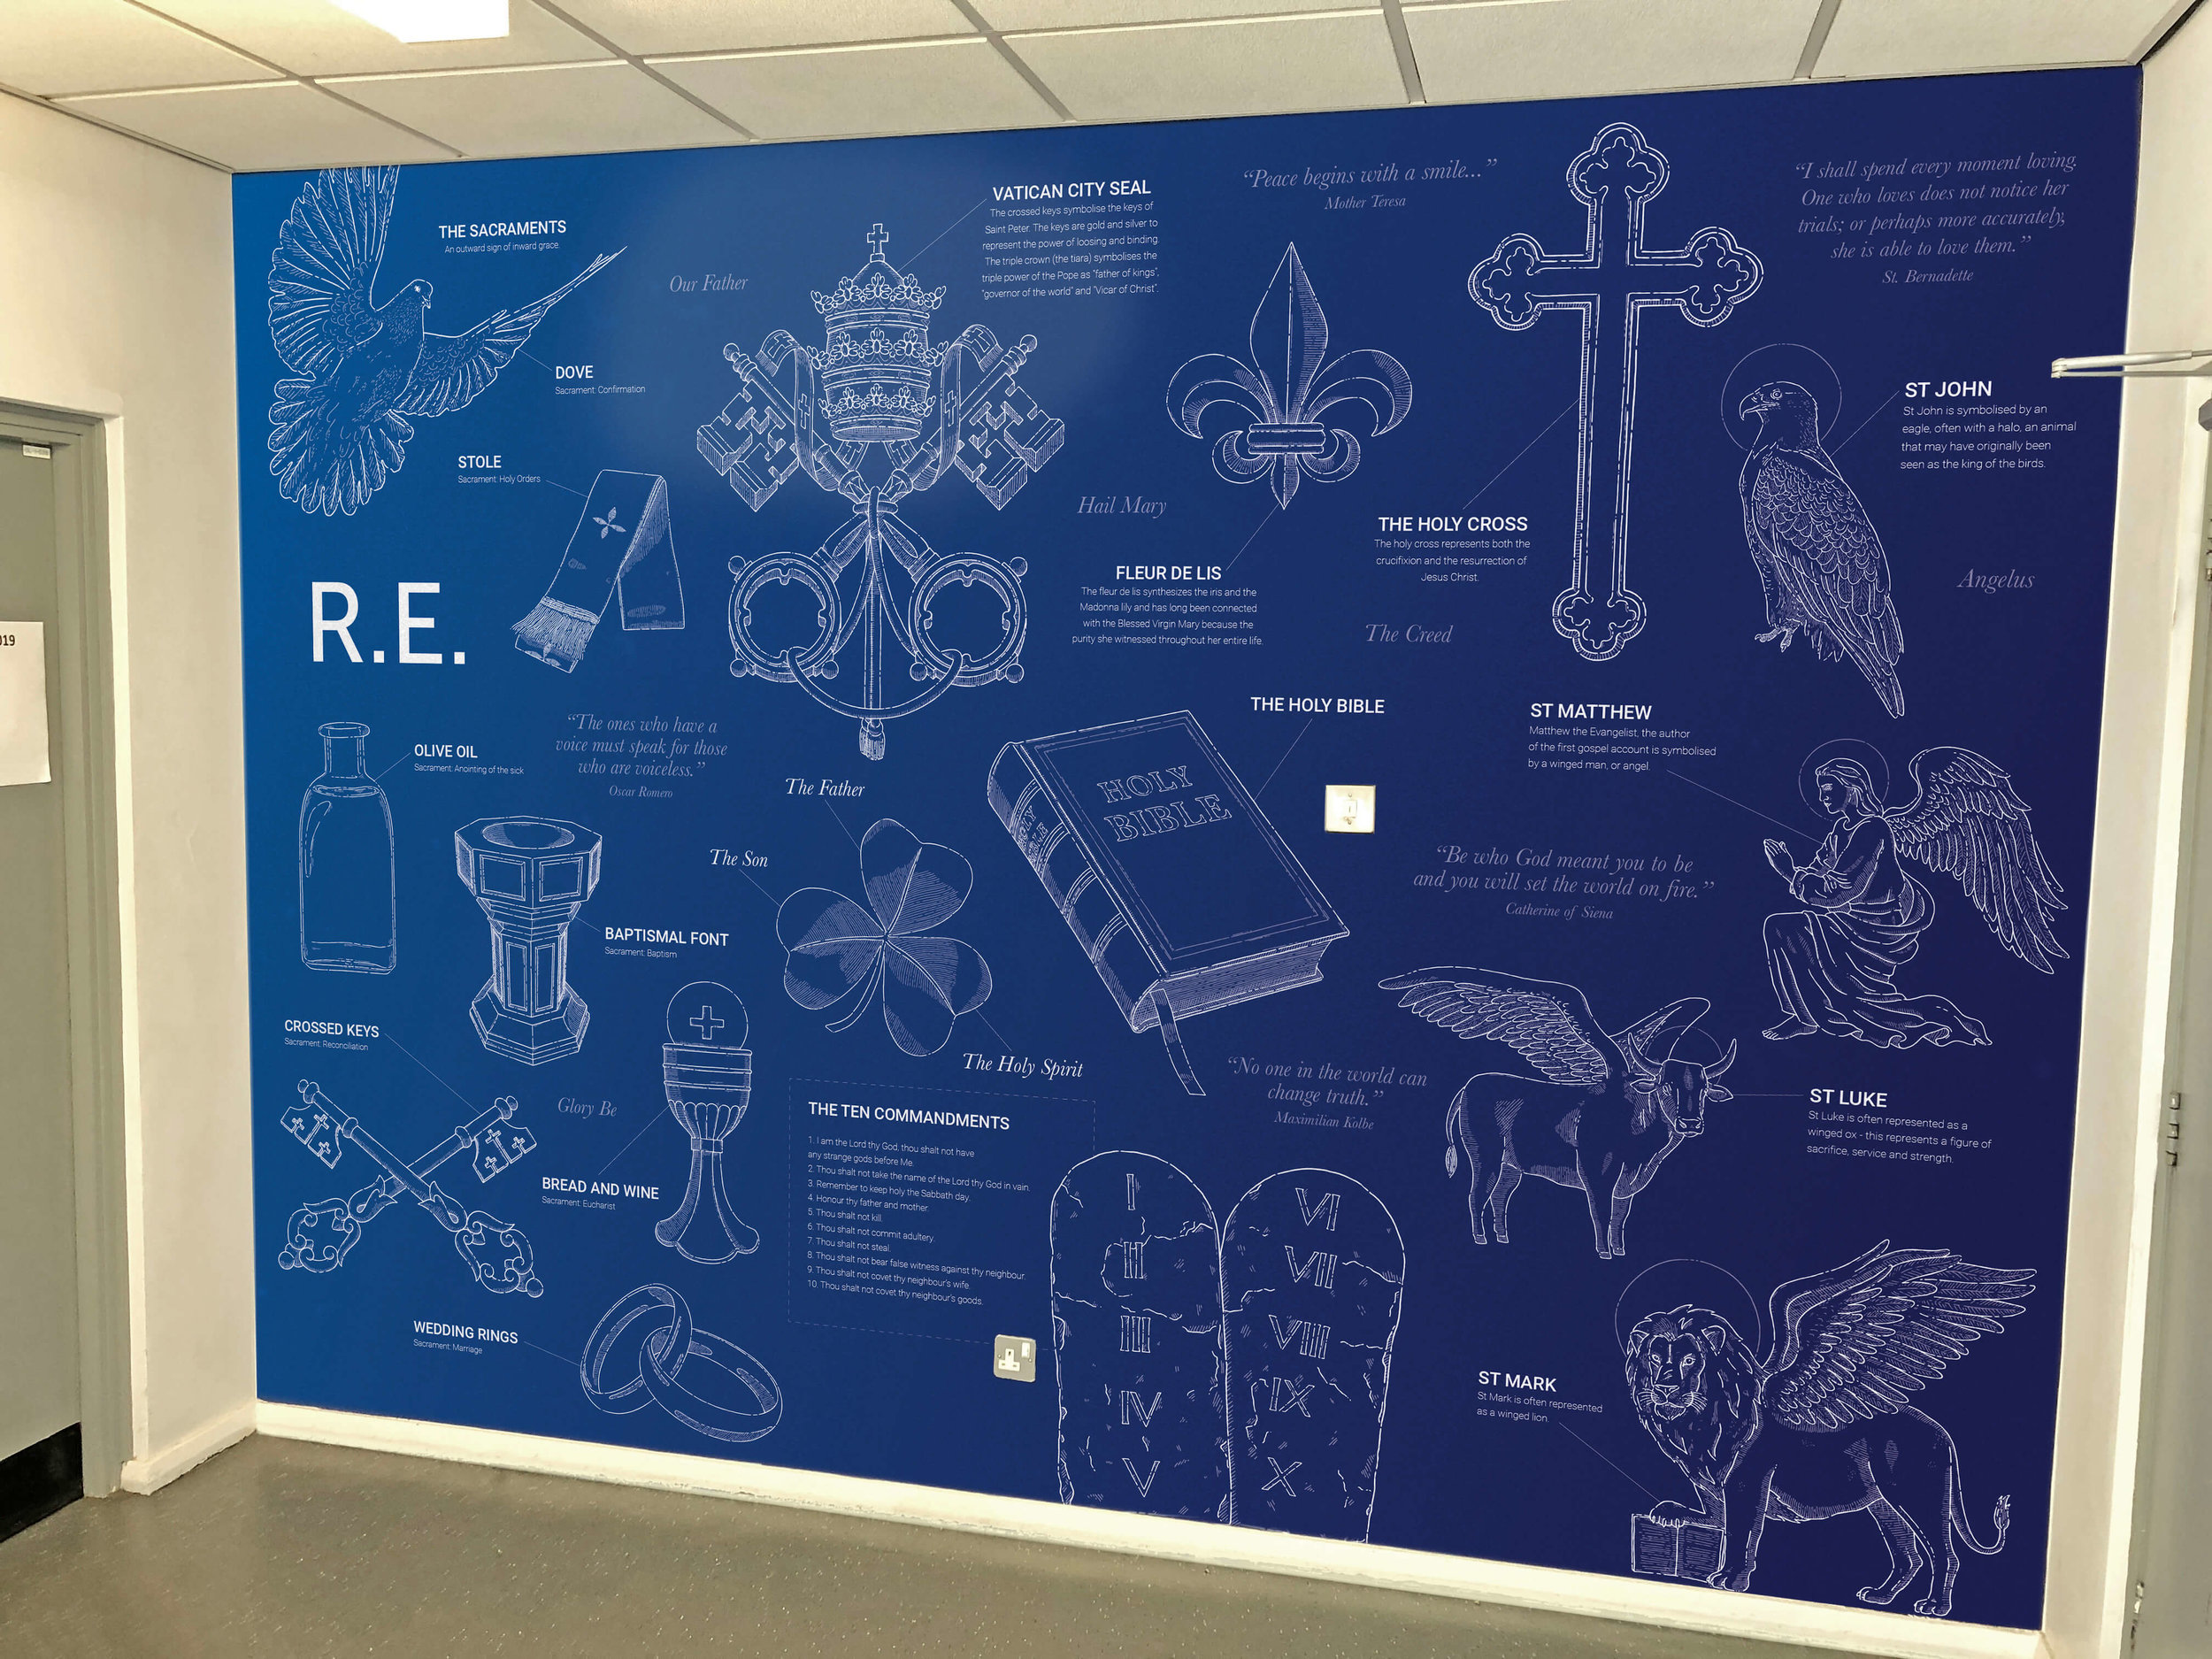 Inspiring Catholic faith wall mural for school | School wall art | Birmingham, Coventry, Midlands, UK